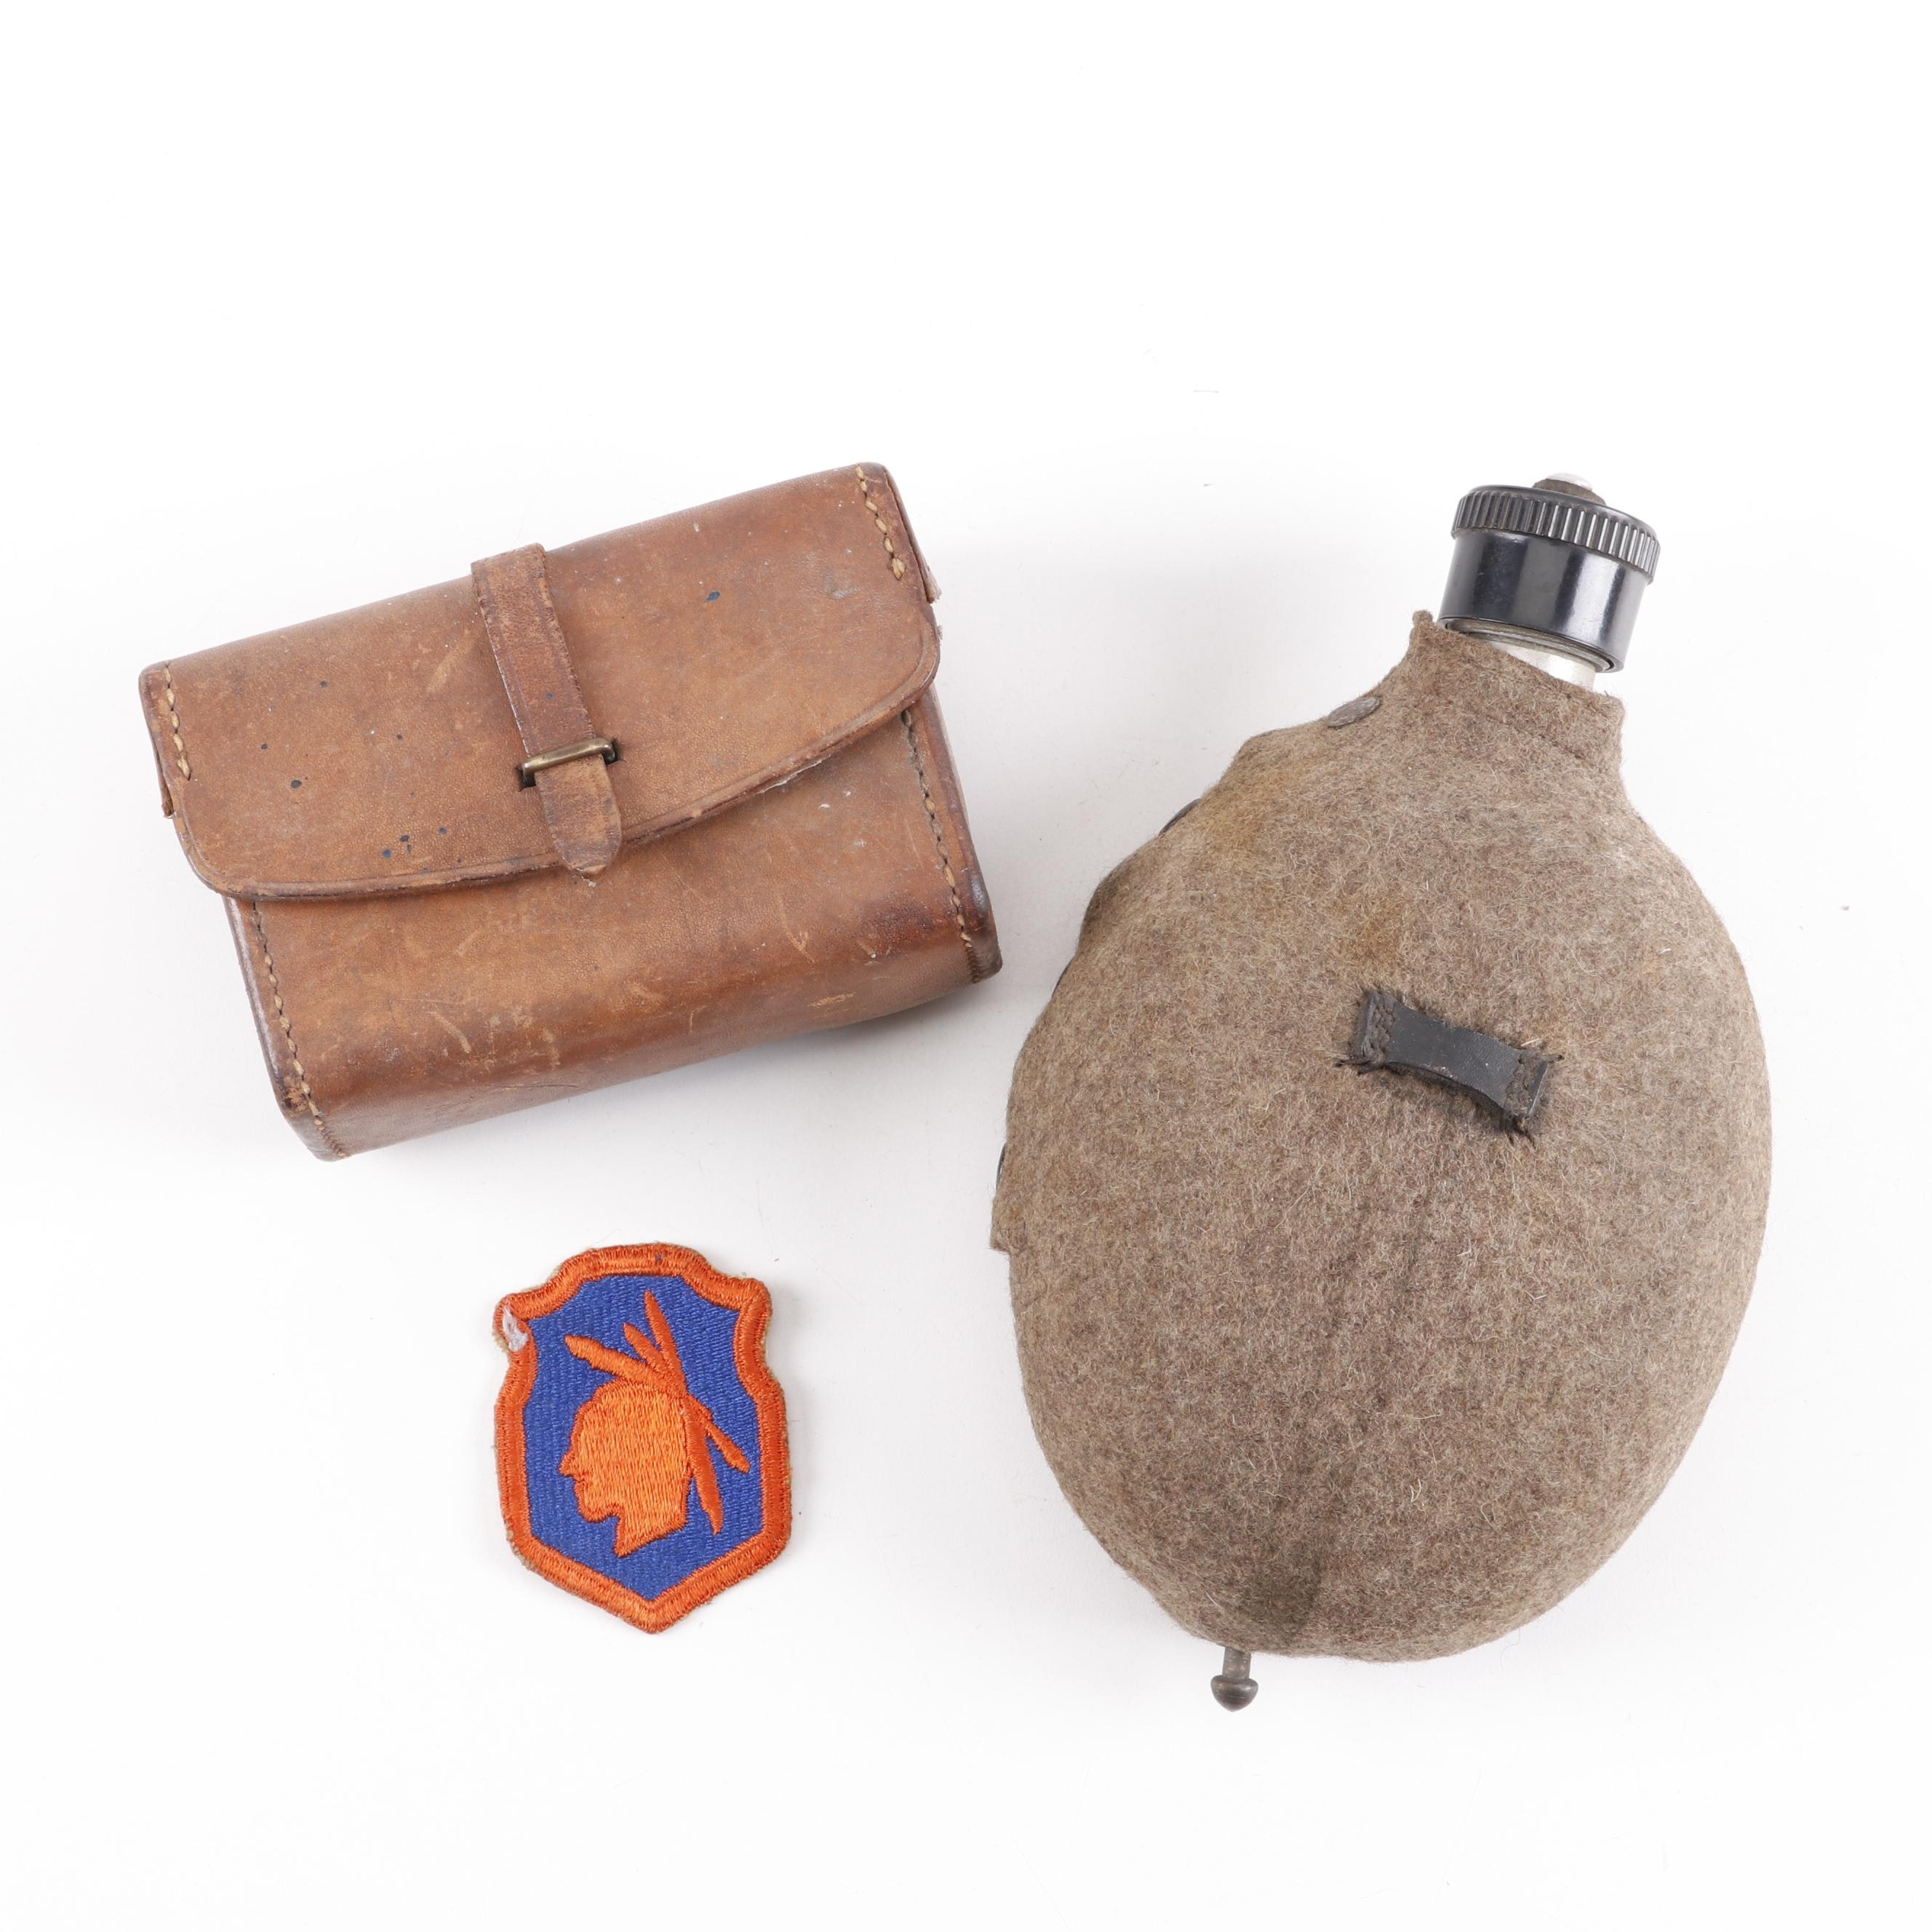 WWII Era Leather Ammo Box and Army Canteen